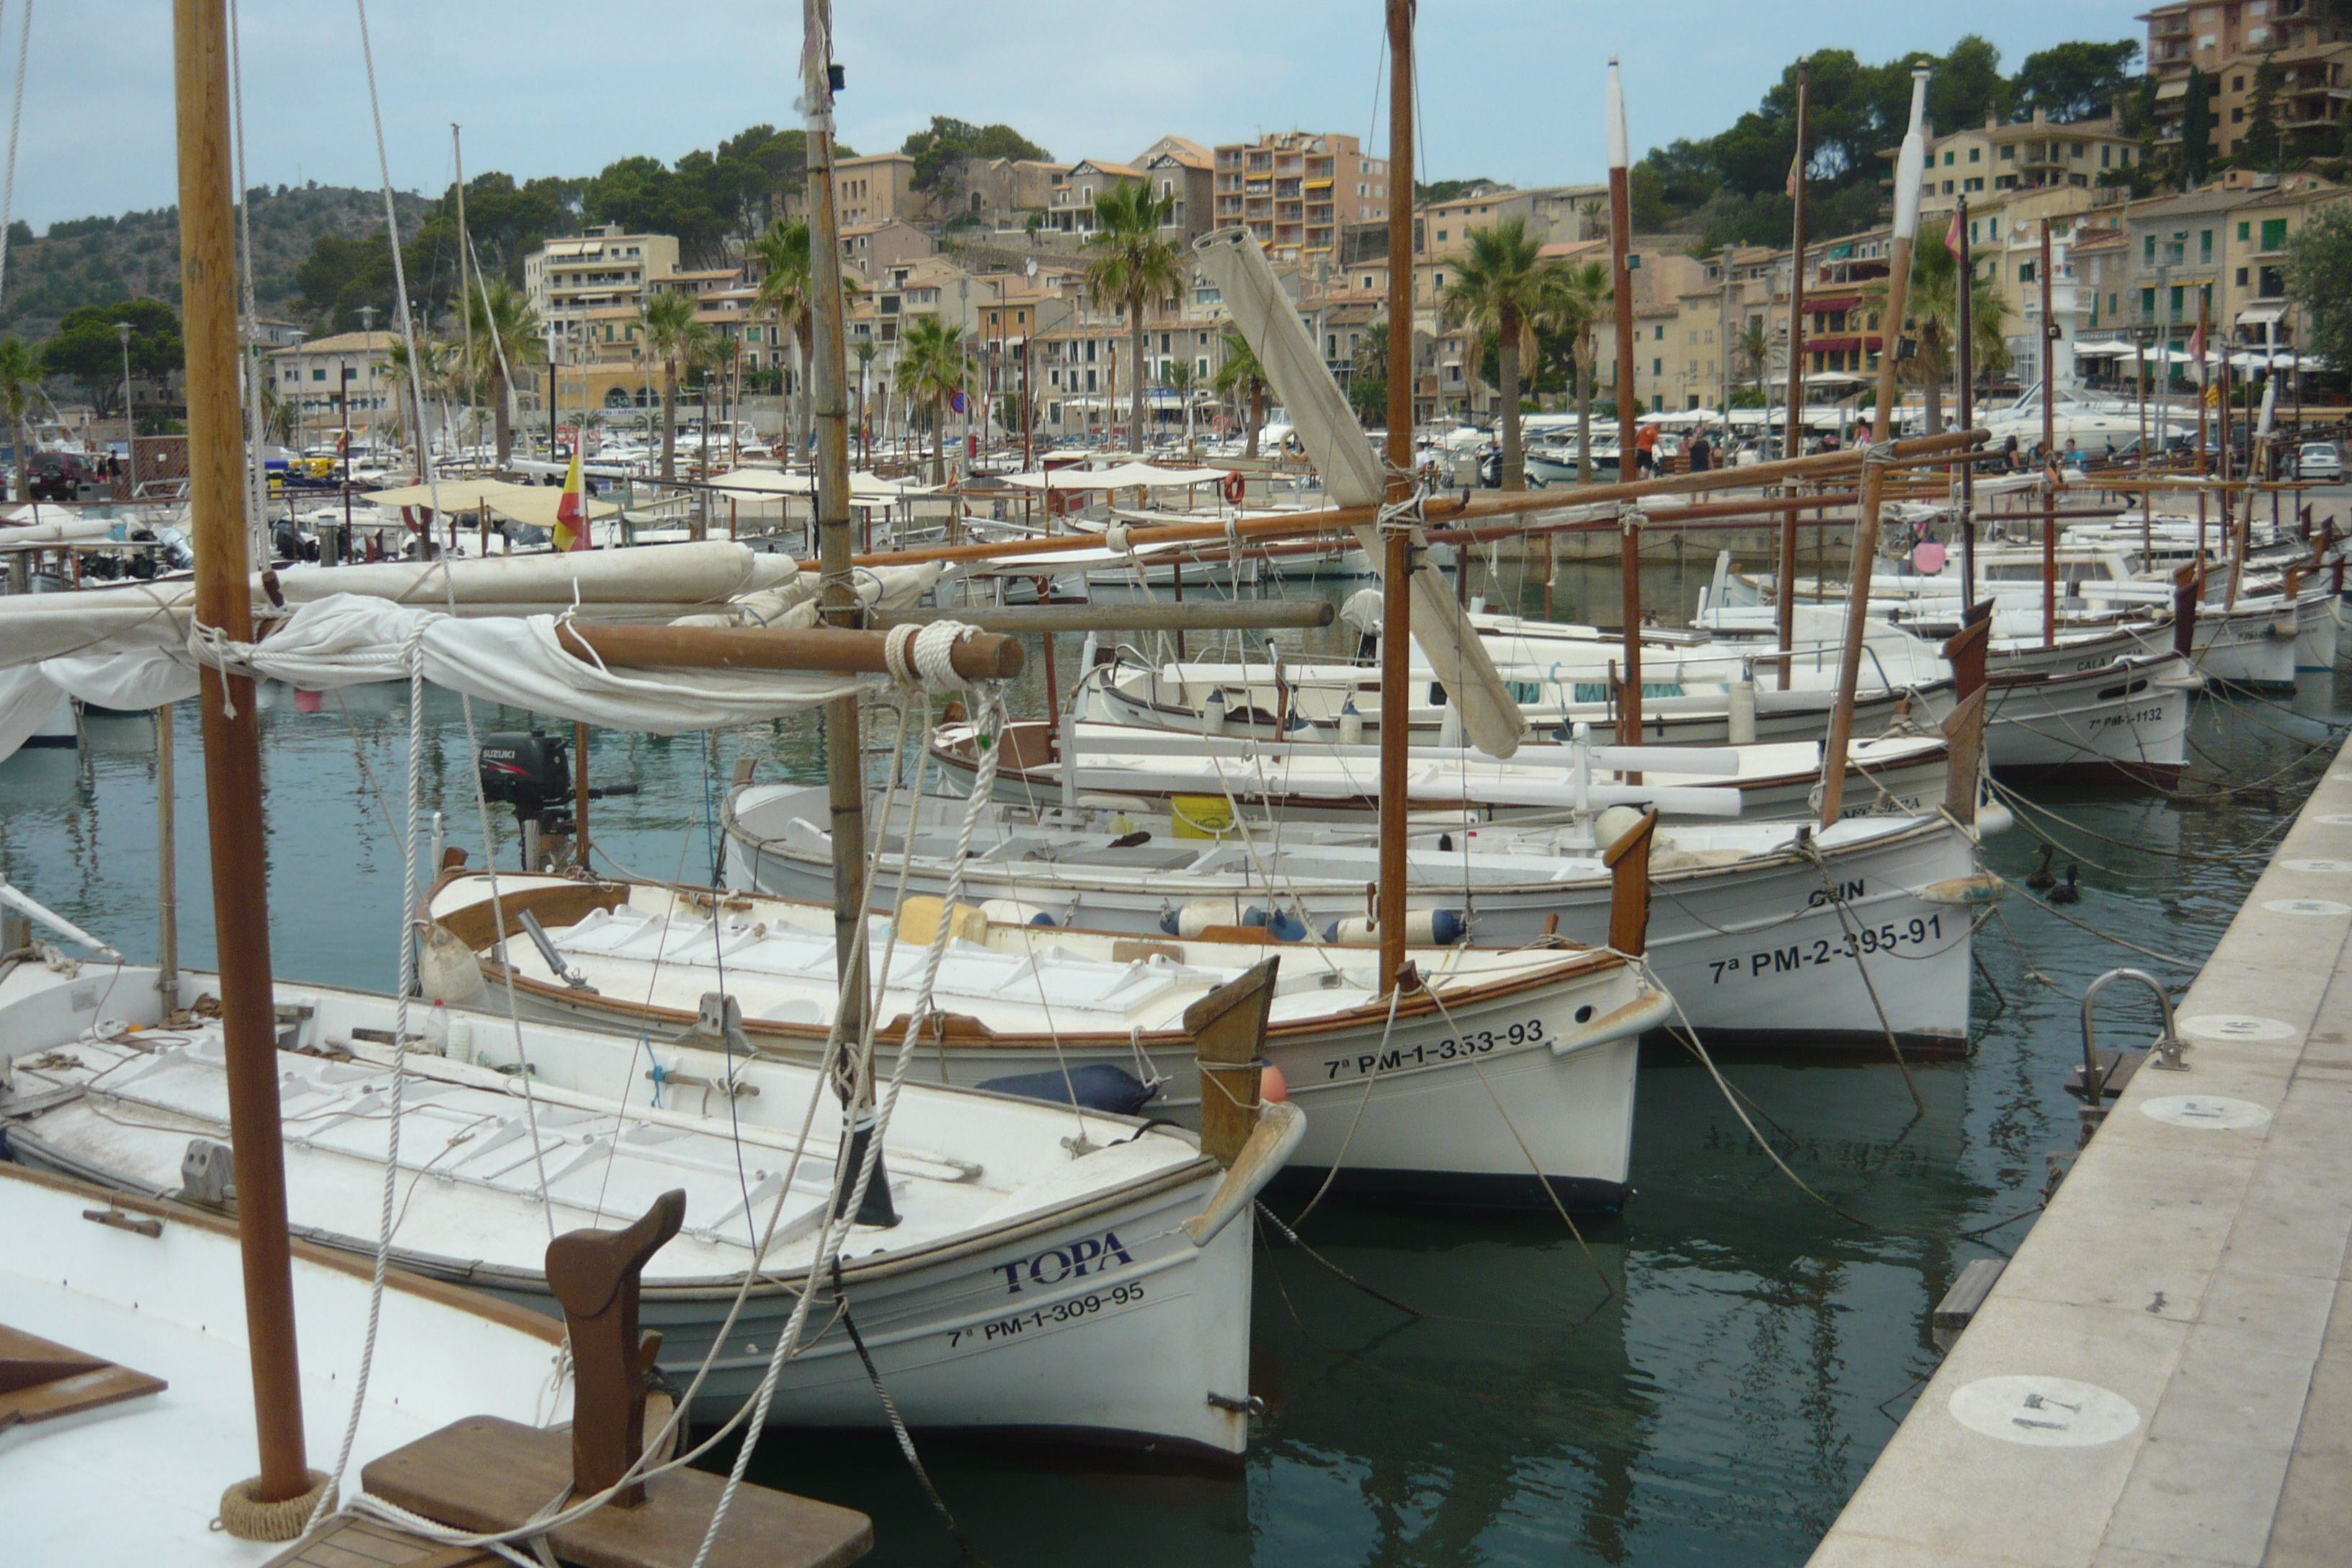 Boats in the port of Sóller, Mallorca - Spain